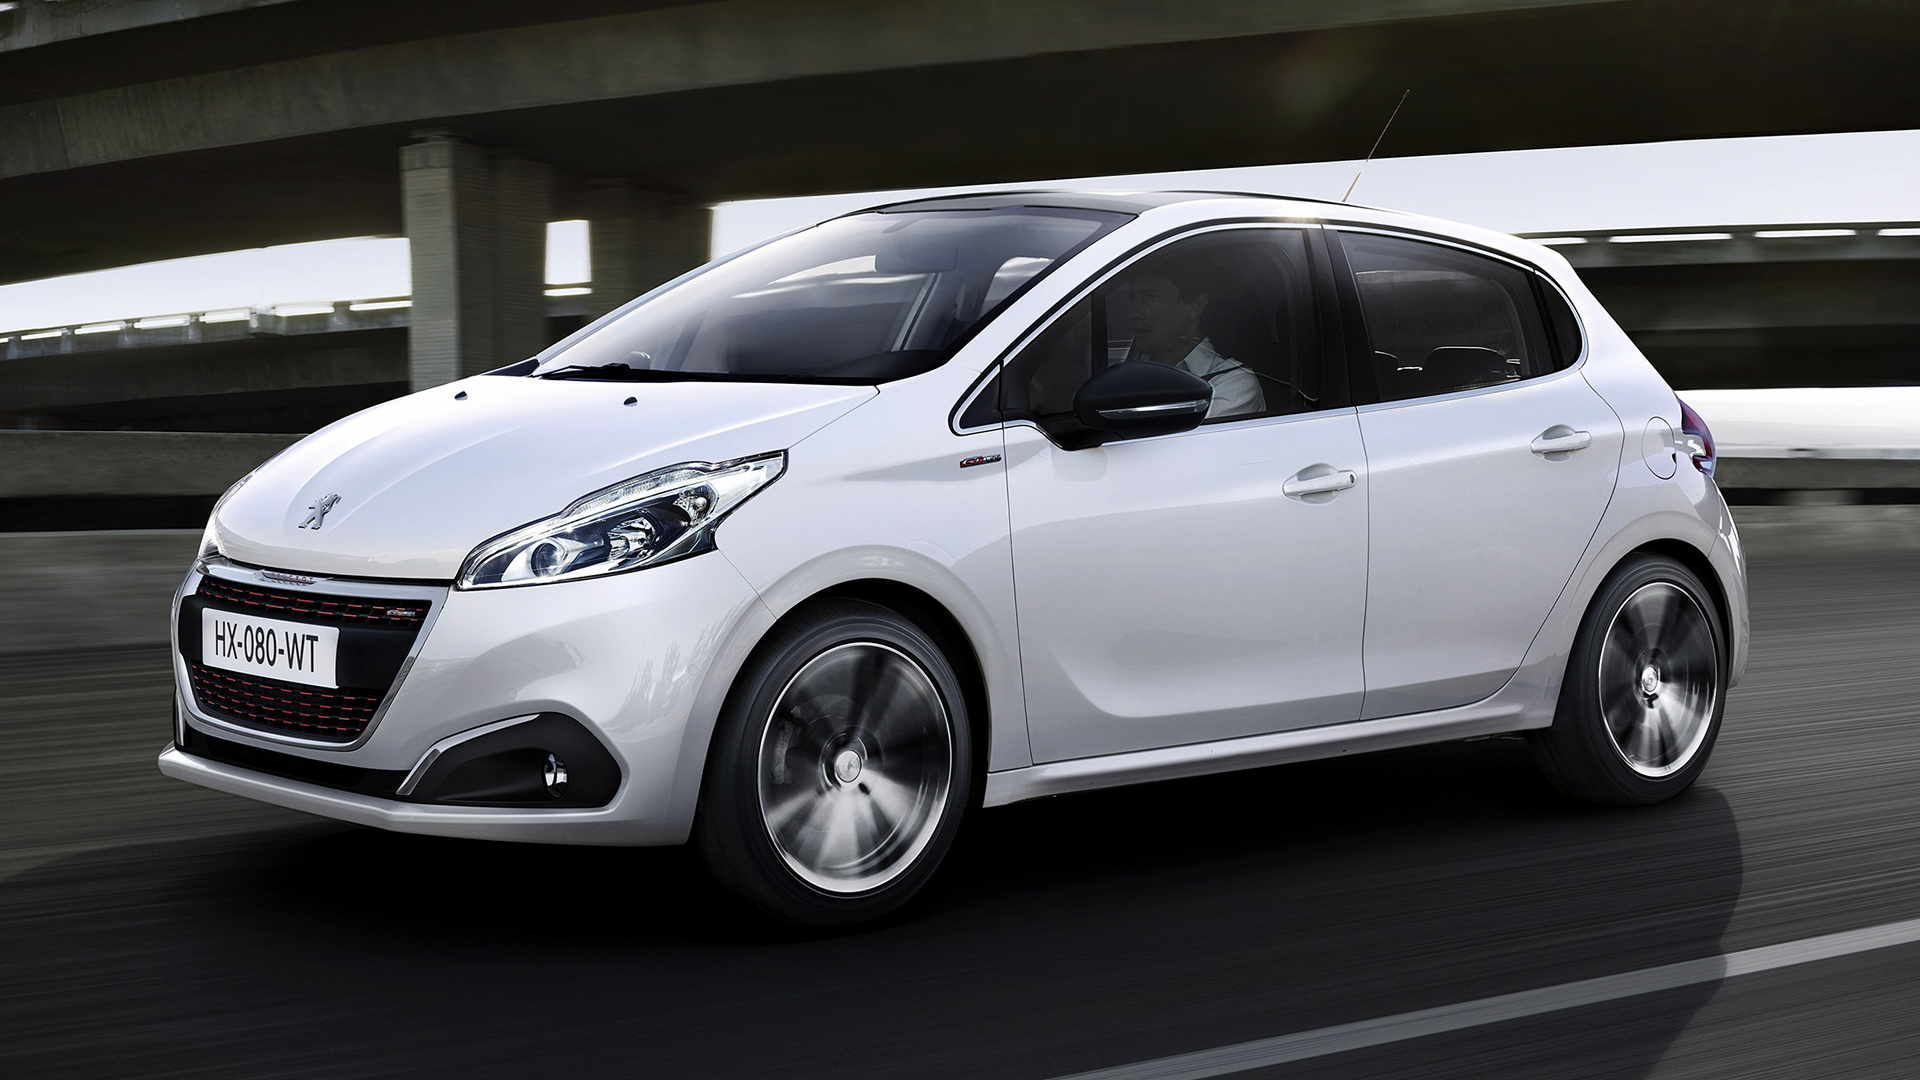 2015 Peugeot 208 Gt Line 5 Door Wallpapers And Hd Images